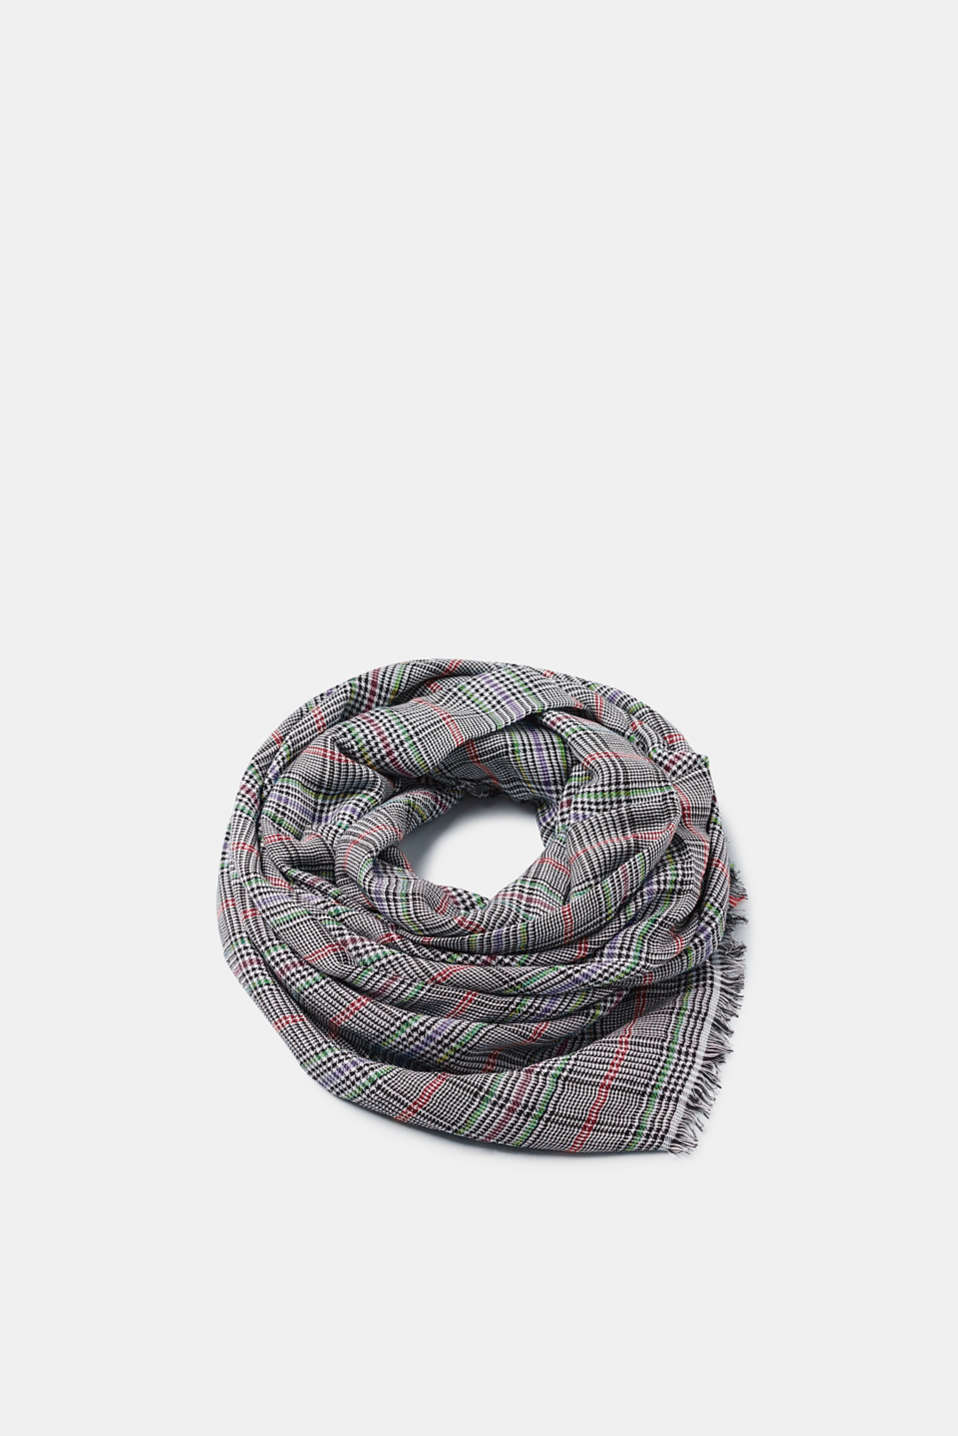 Esprit - Glencheck scarf in blended cotton